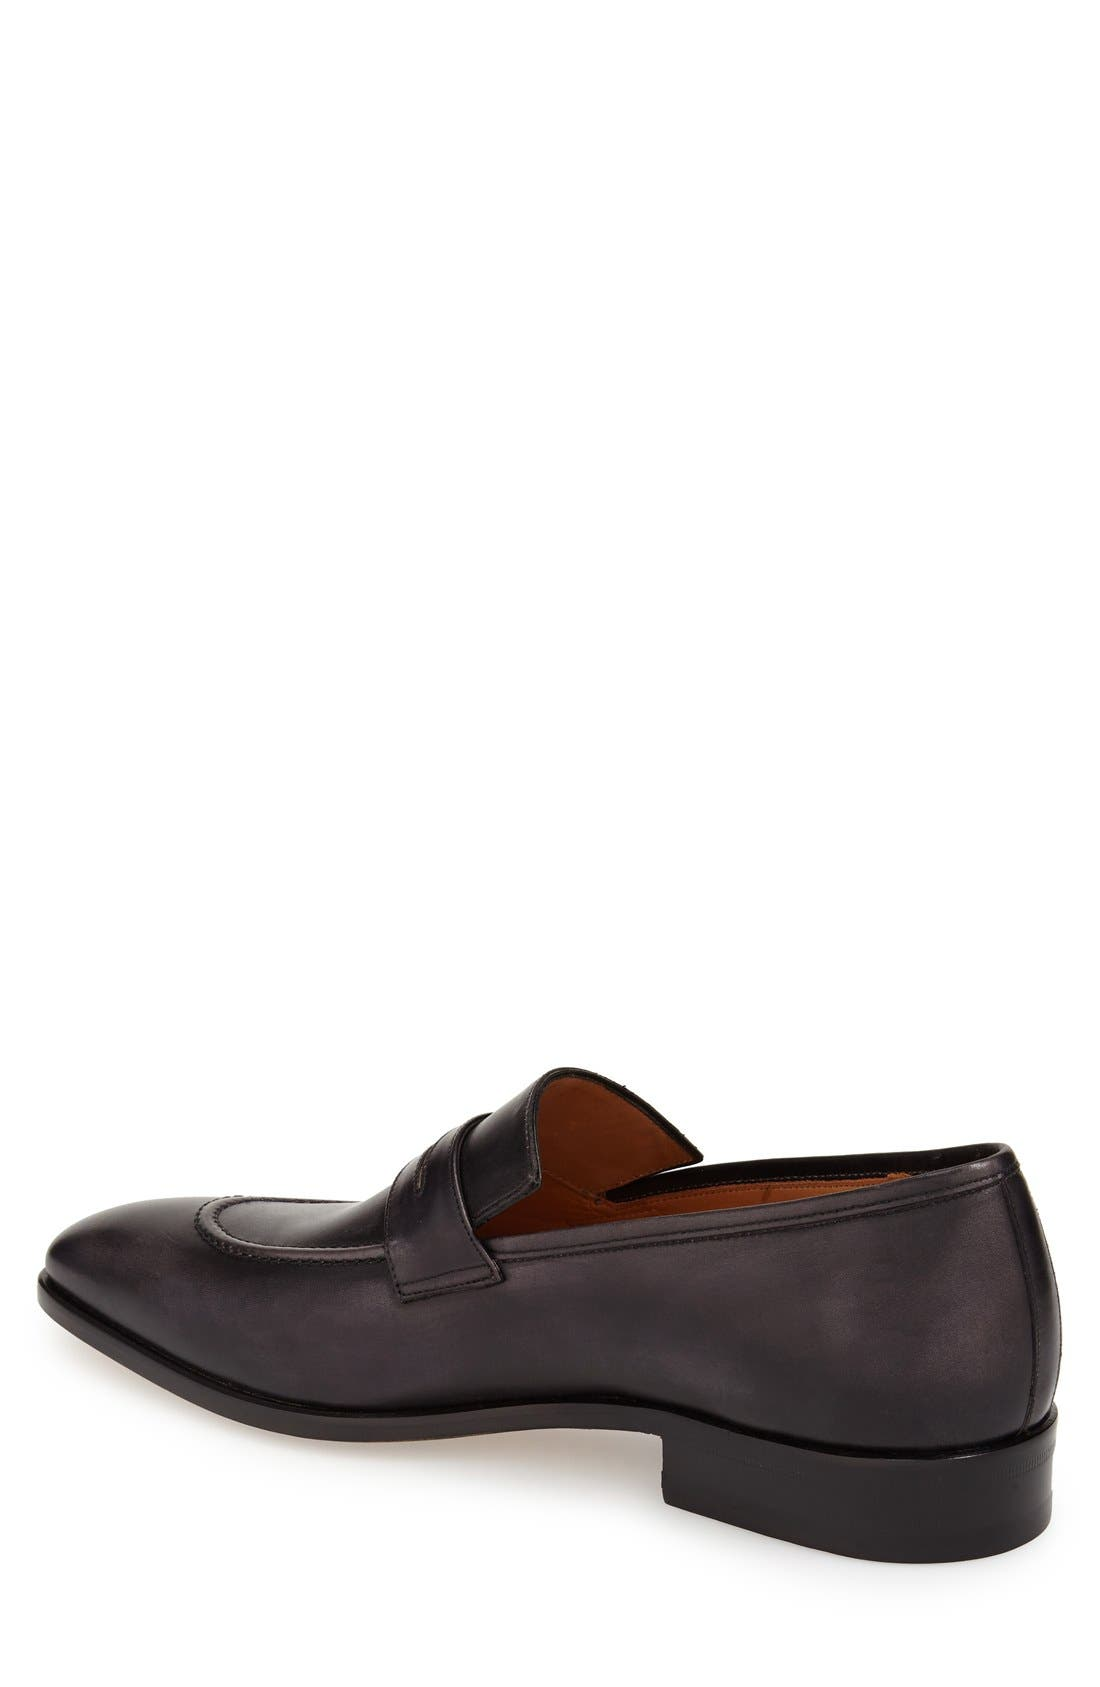 'Bione' Penny Loafer,                             Alternate thumbnail 3, color,